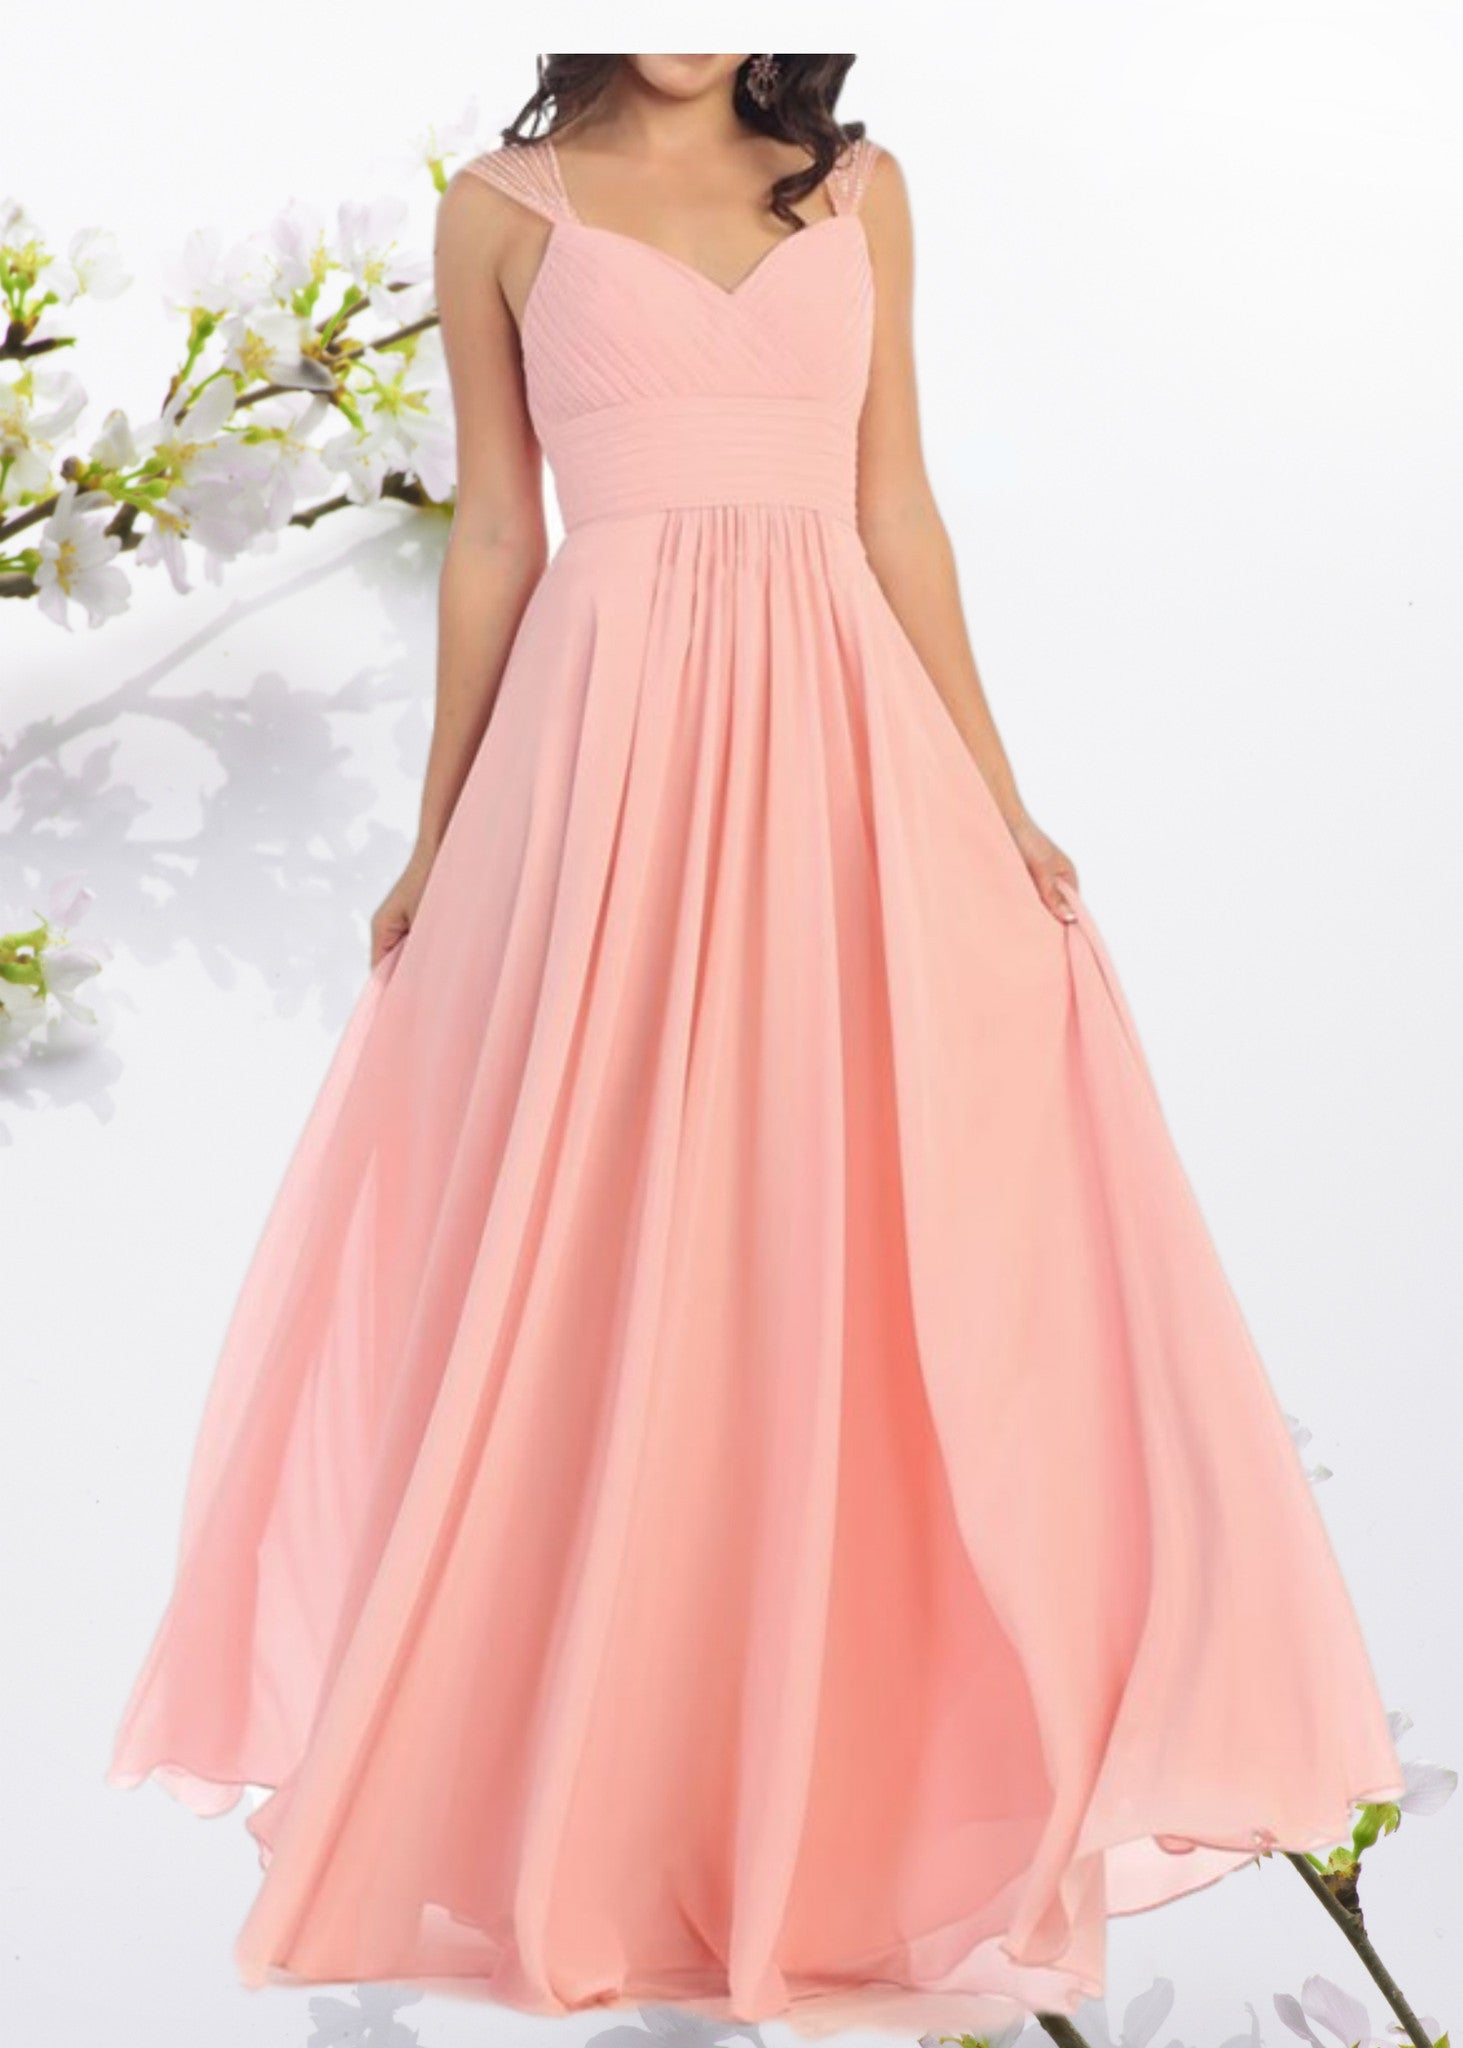 Affordable bridesmaid dresses long chiffon dresses simply fab chiffon bridesmaid dress mq1275sku fabmq1275lovely sheer beaded strap sweetheart neckline long chiffon bridesmaid dress this gorgeous empire waist ombrellifo Gallery